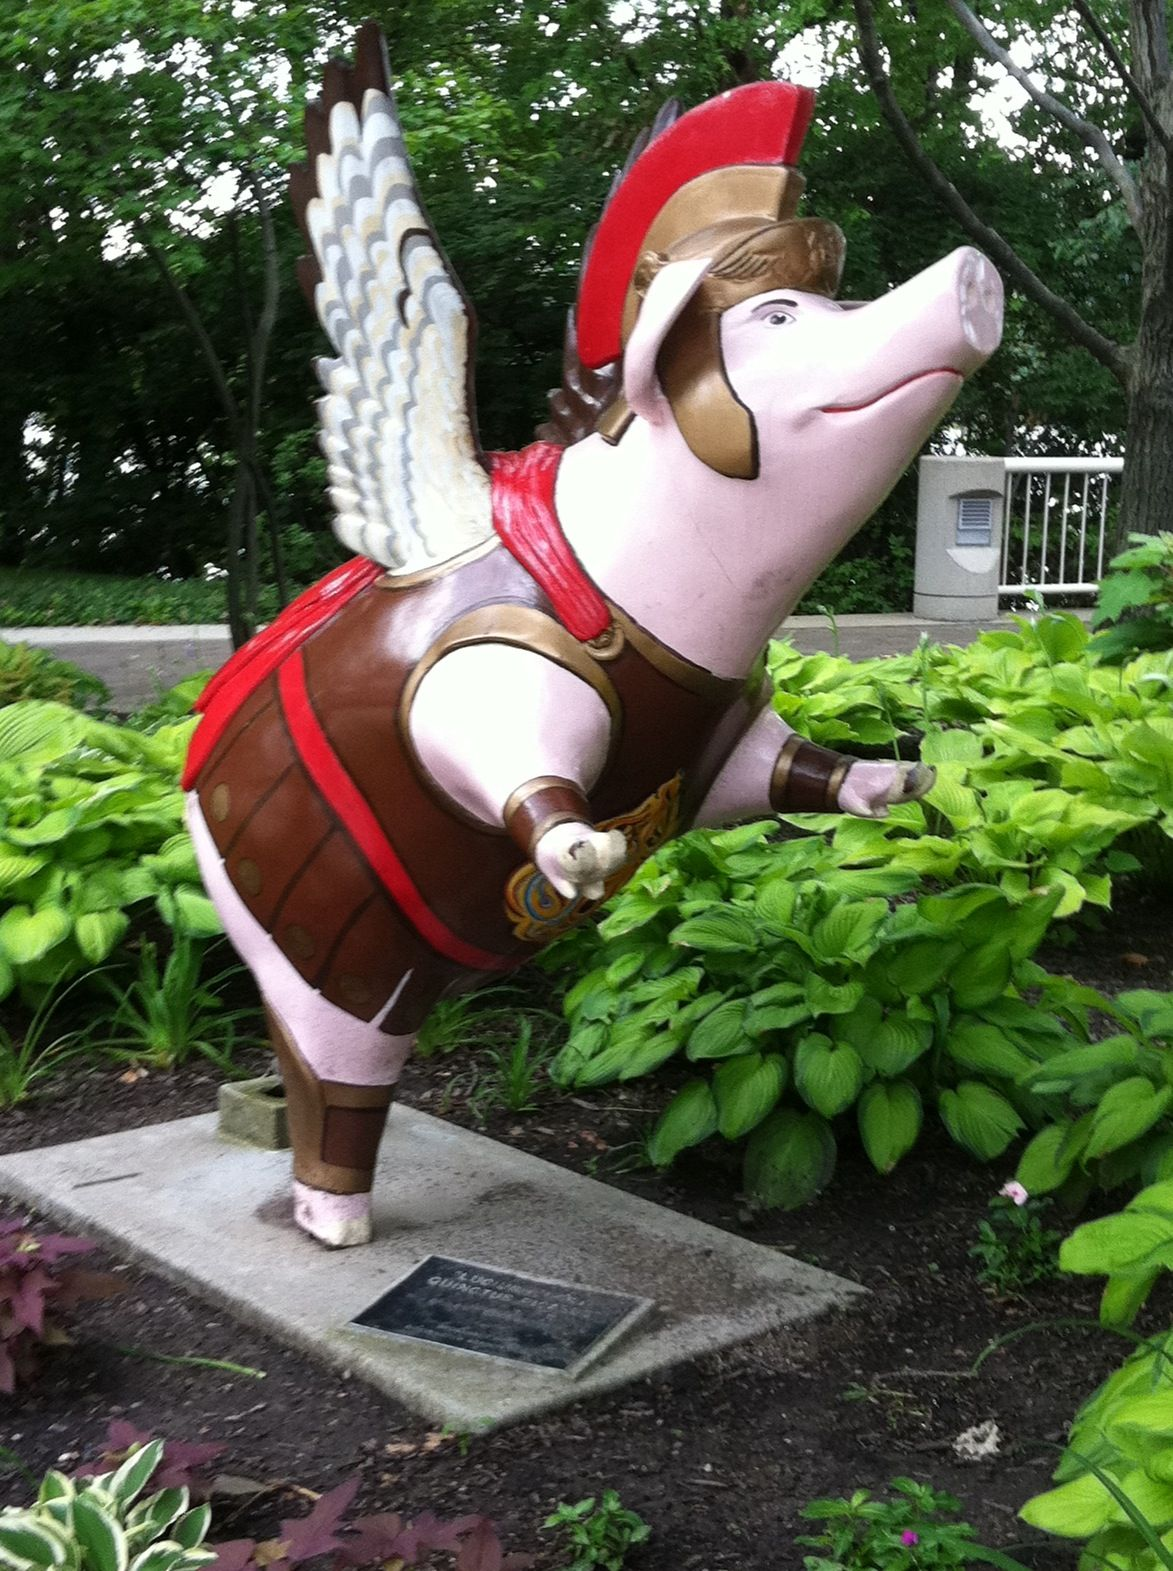 Pig lawn ornament - Flying Pigs